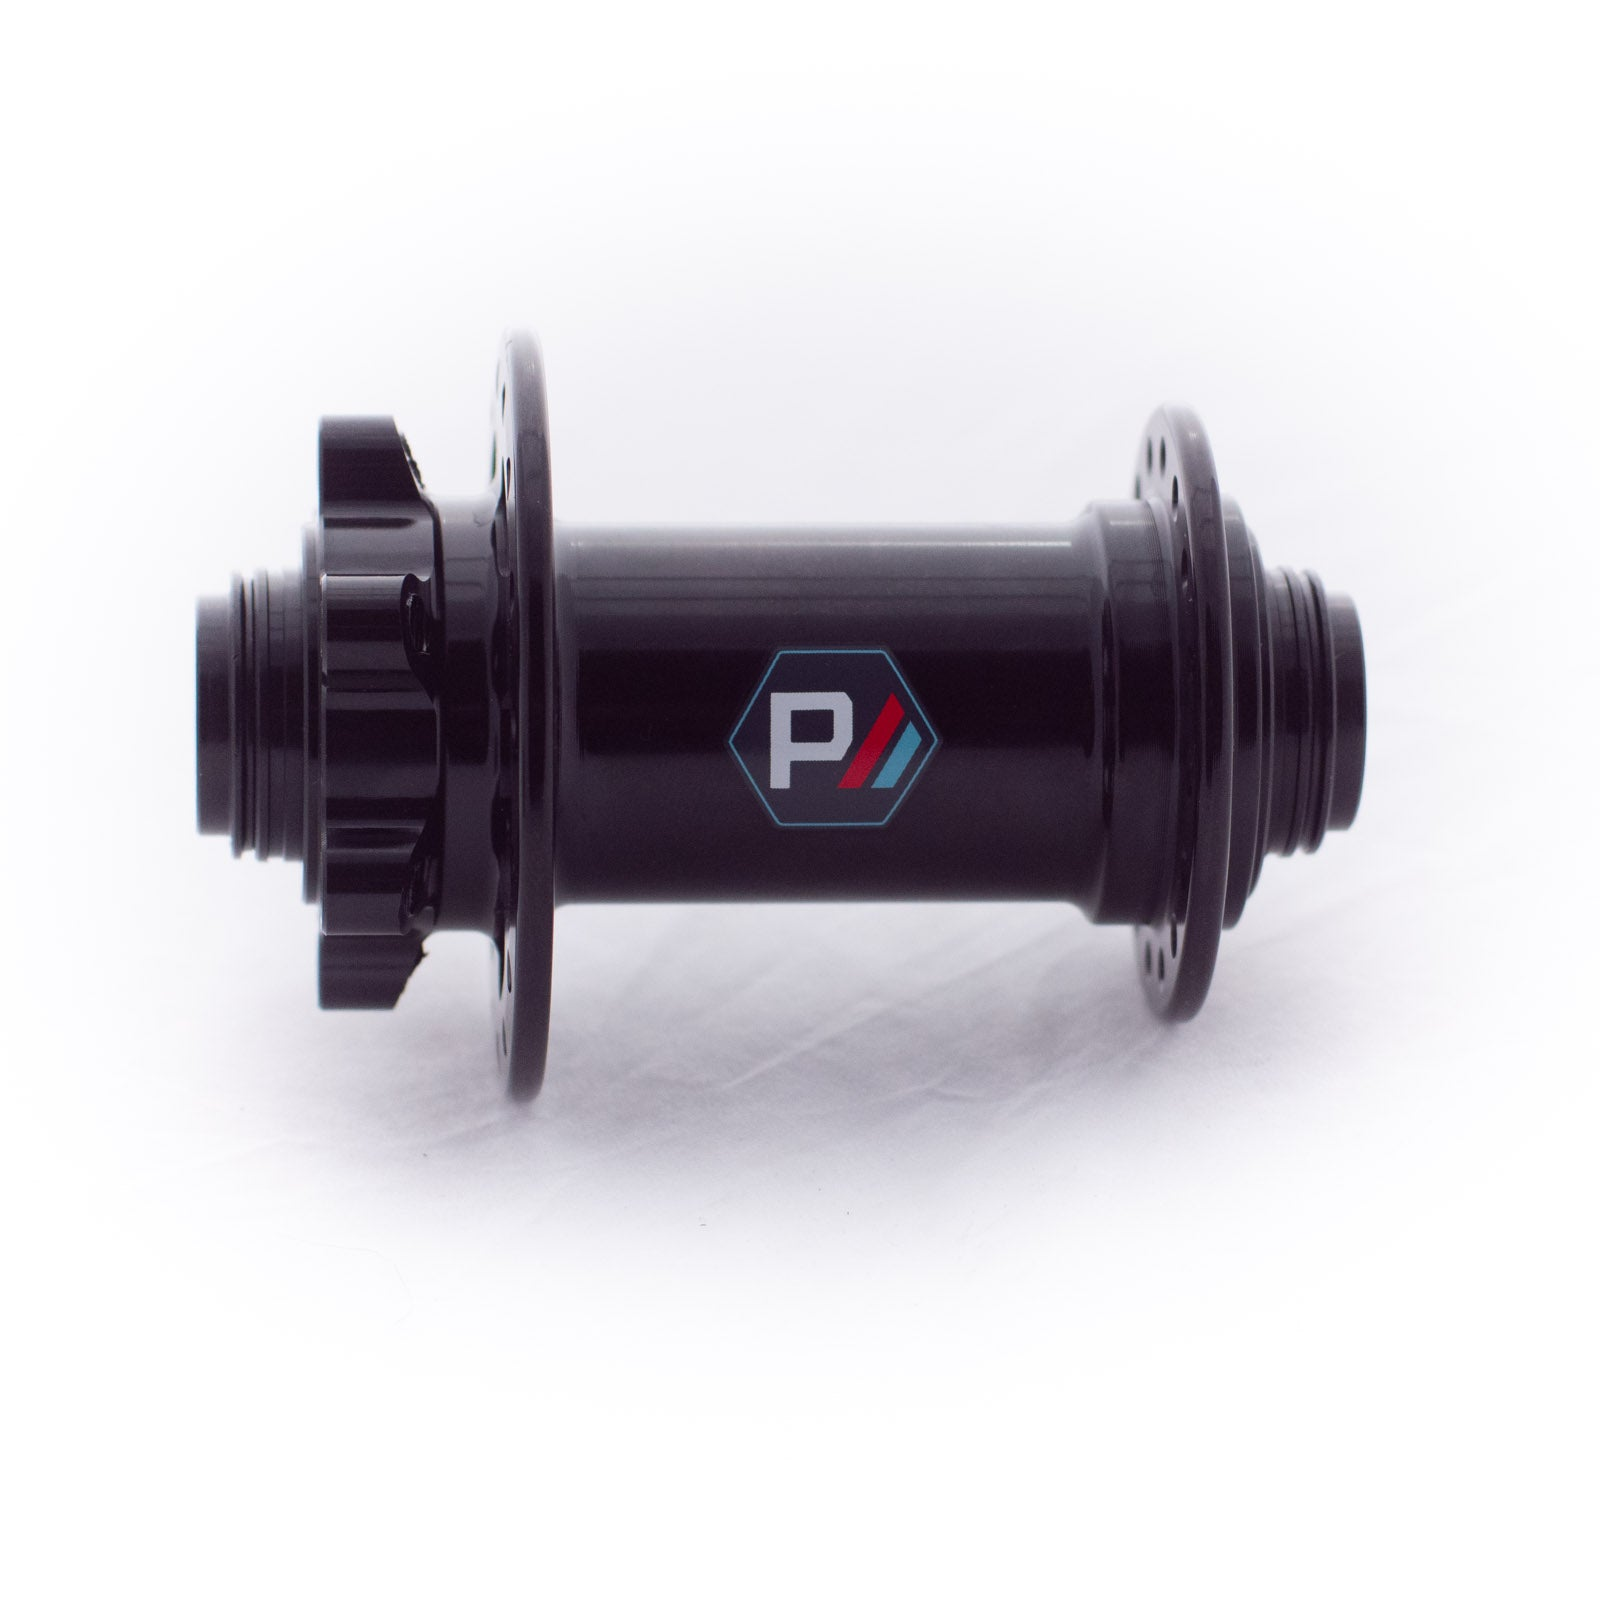 Pacenti MTB hub 6bolt Disc Front 100x15mm